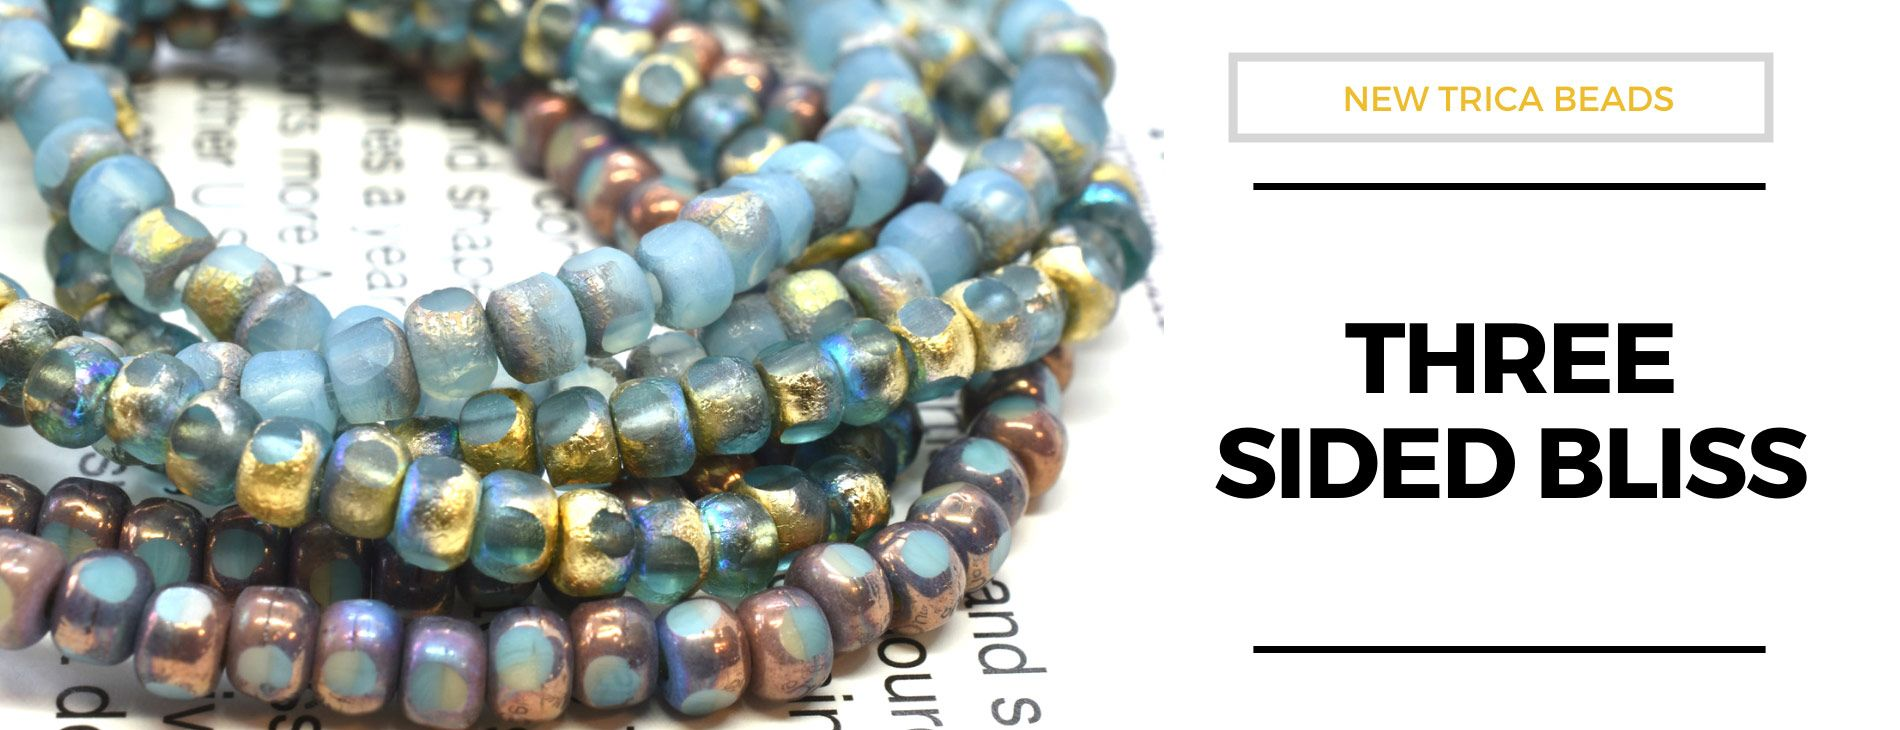 https://nirvanabeads.com/new-beads